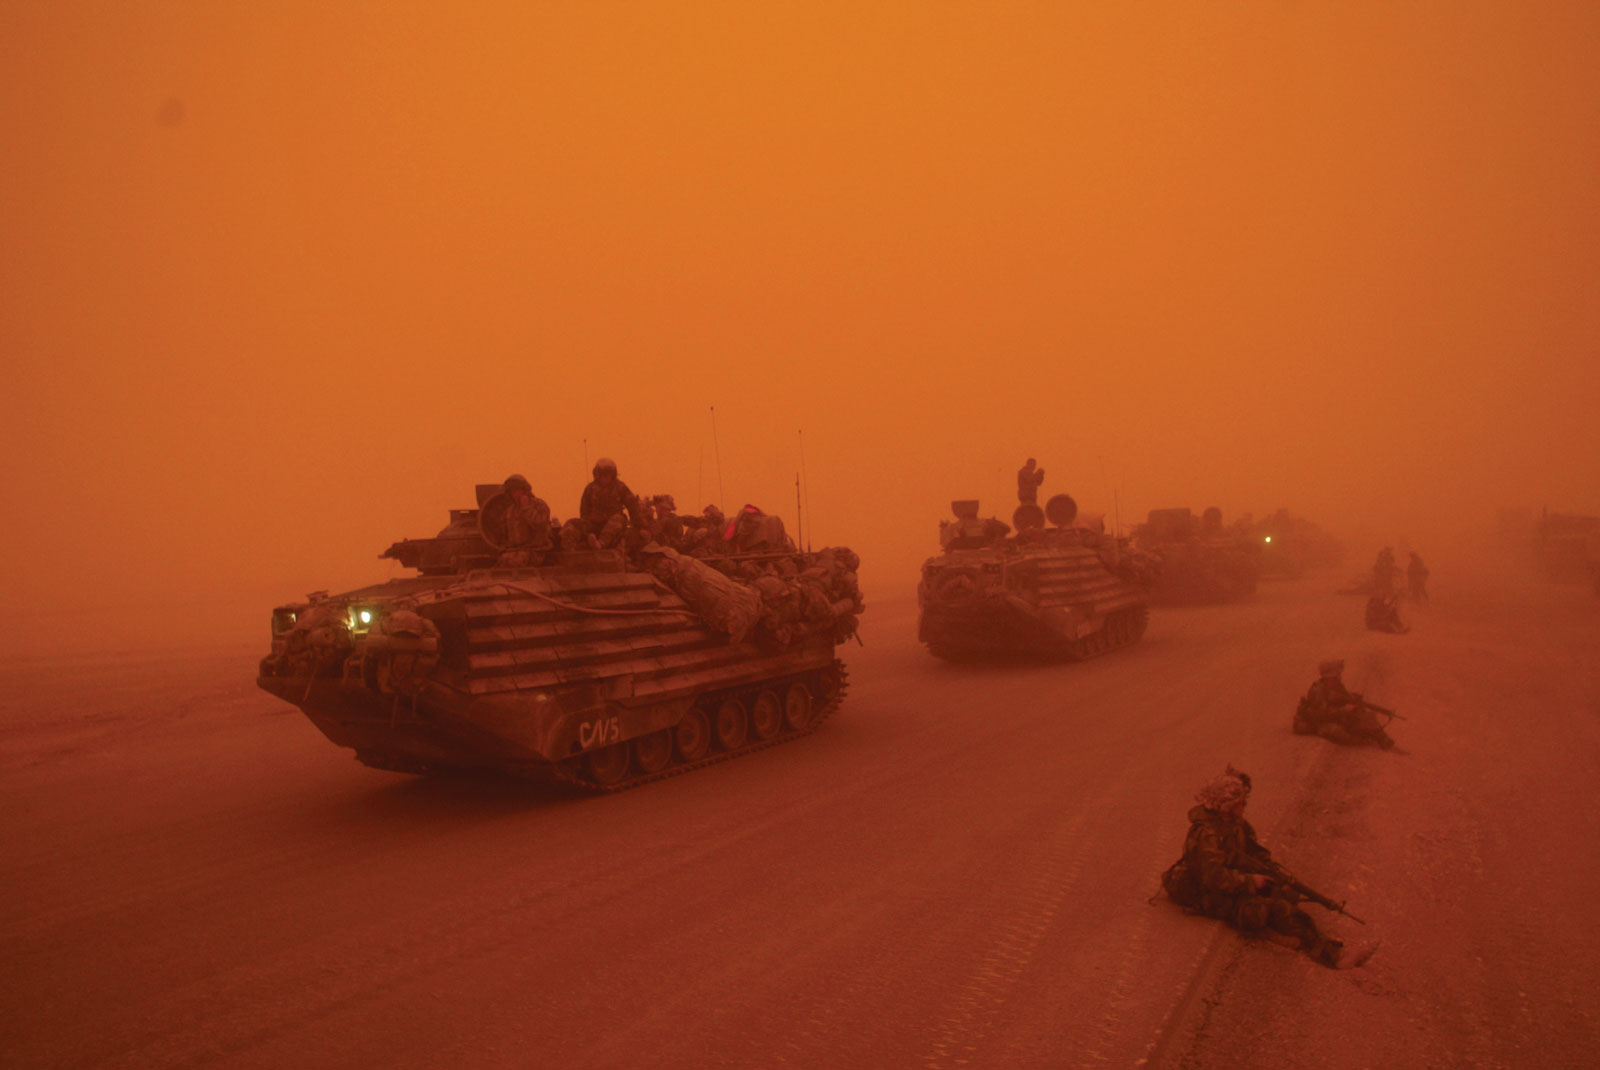 A US Marine convey, north of the Euphrates, Iraq; photograph published in The New York Times on March 26, 2003, and included in War is Beautiful